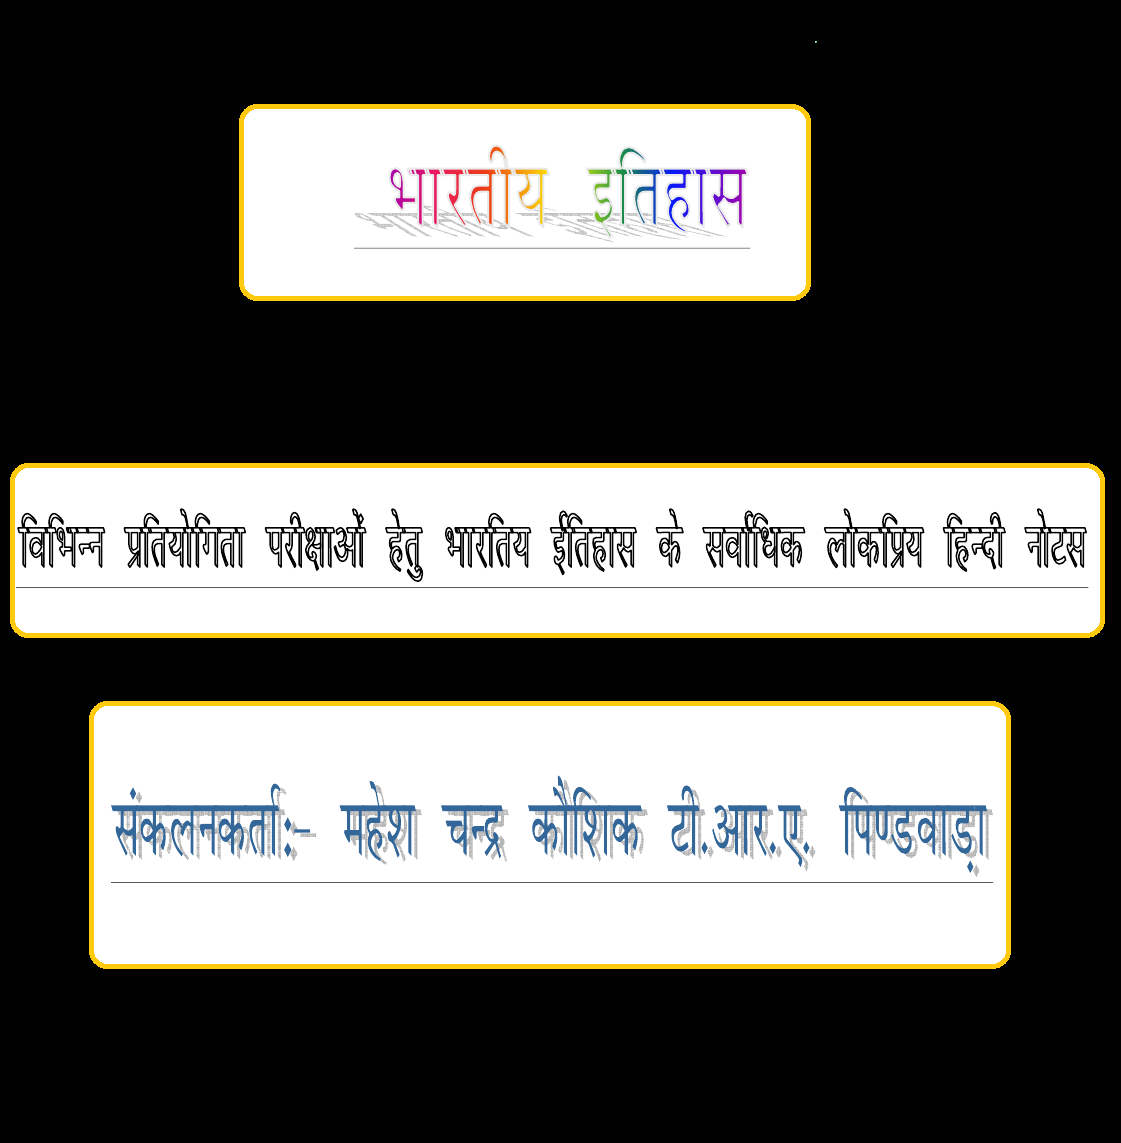 http://www.mediafire.com/view/f493omql25tv8i4/FREE_INDIAN_HISTORY_NOTES_IN_HINDI.pdf